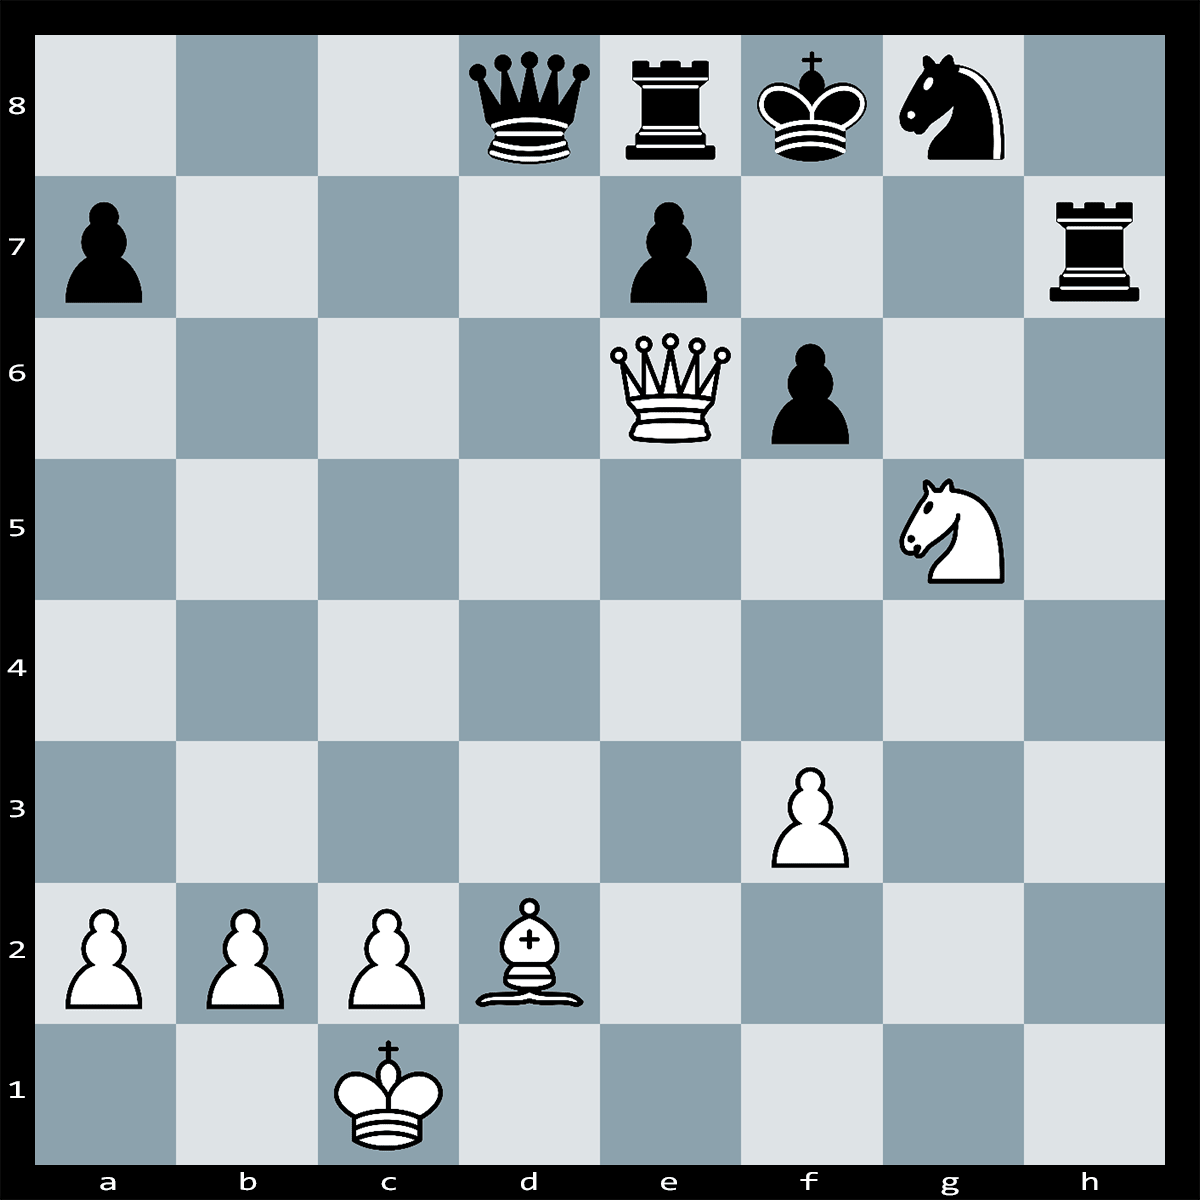 Chess Puzzle #324 | In this position White can force checkmate in two moves. Can you see how this is achieved?